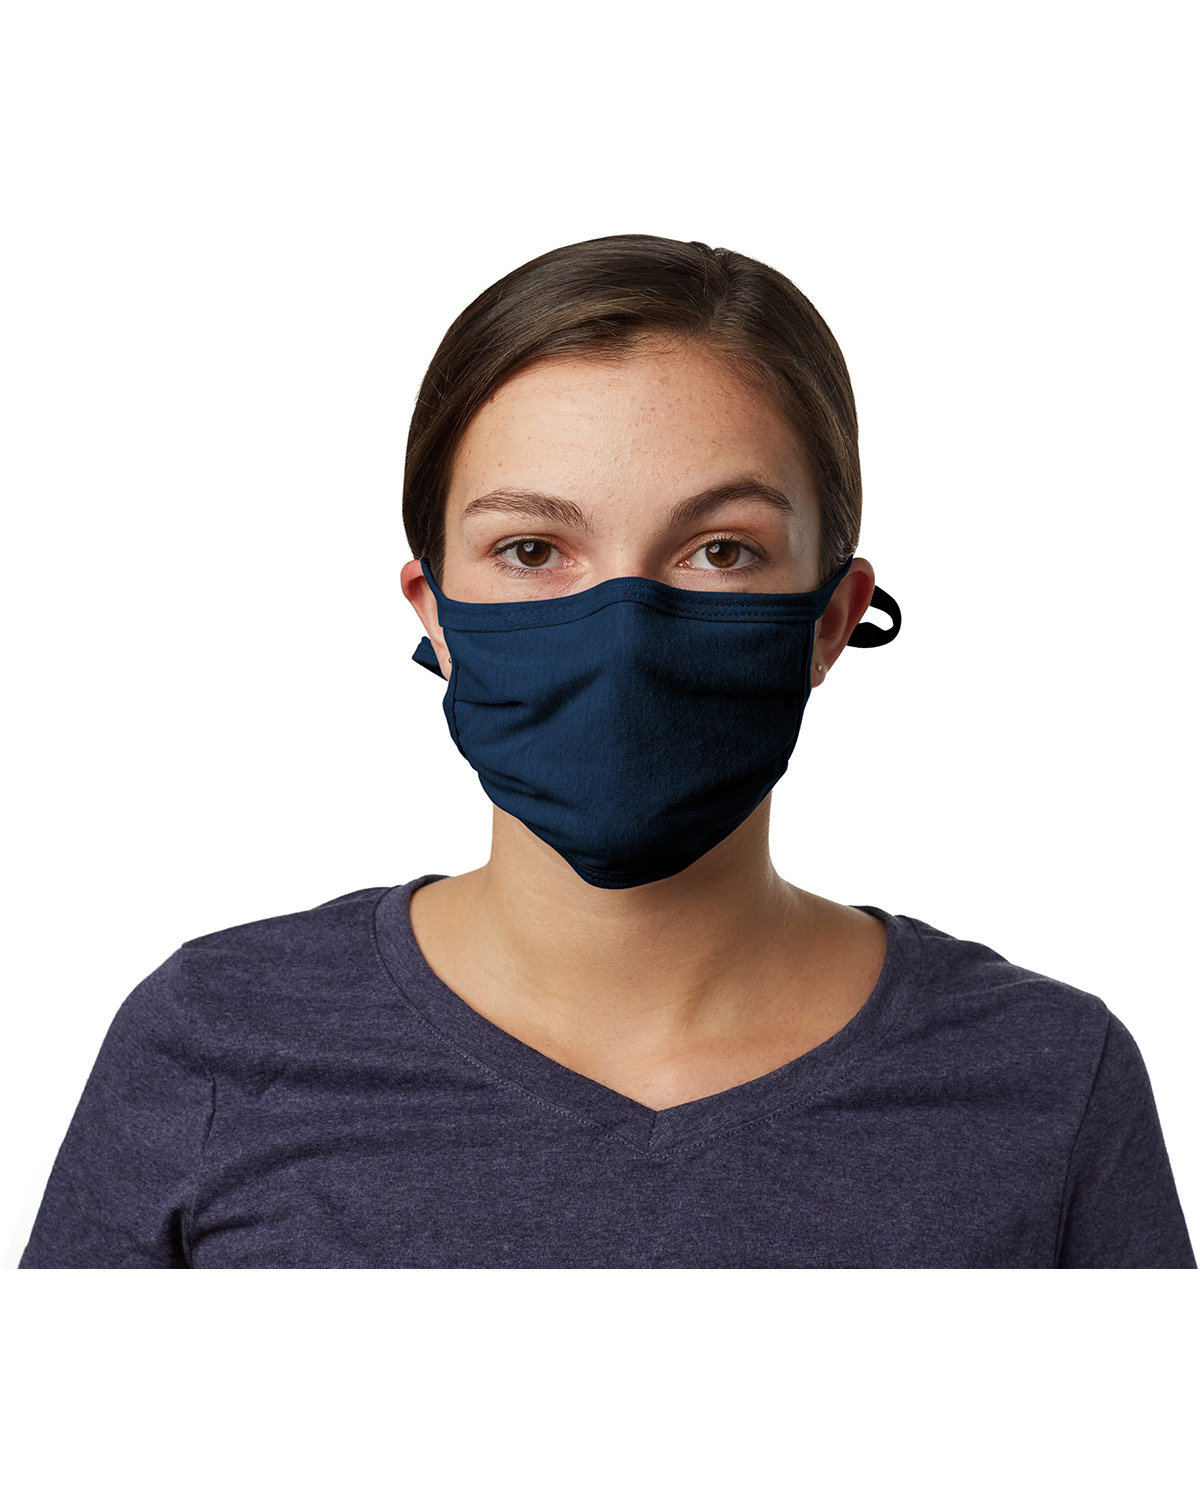 Hanes Adult 2-Ply Adjustable Mask NAVY